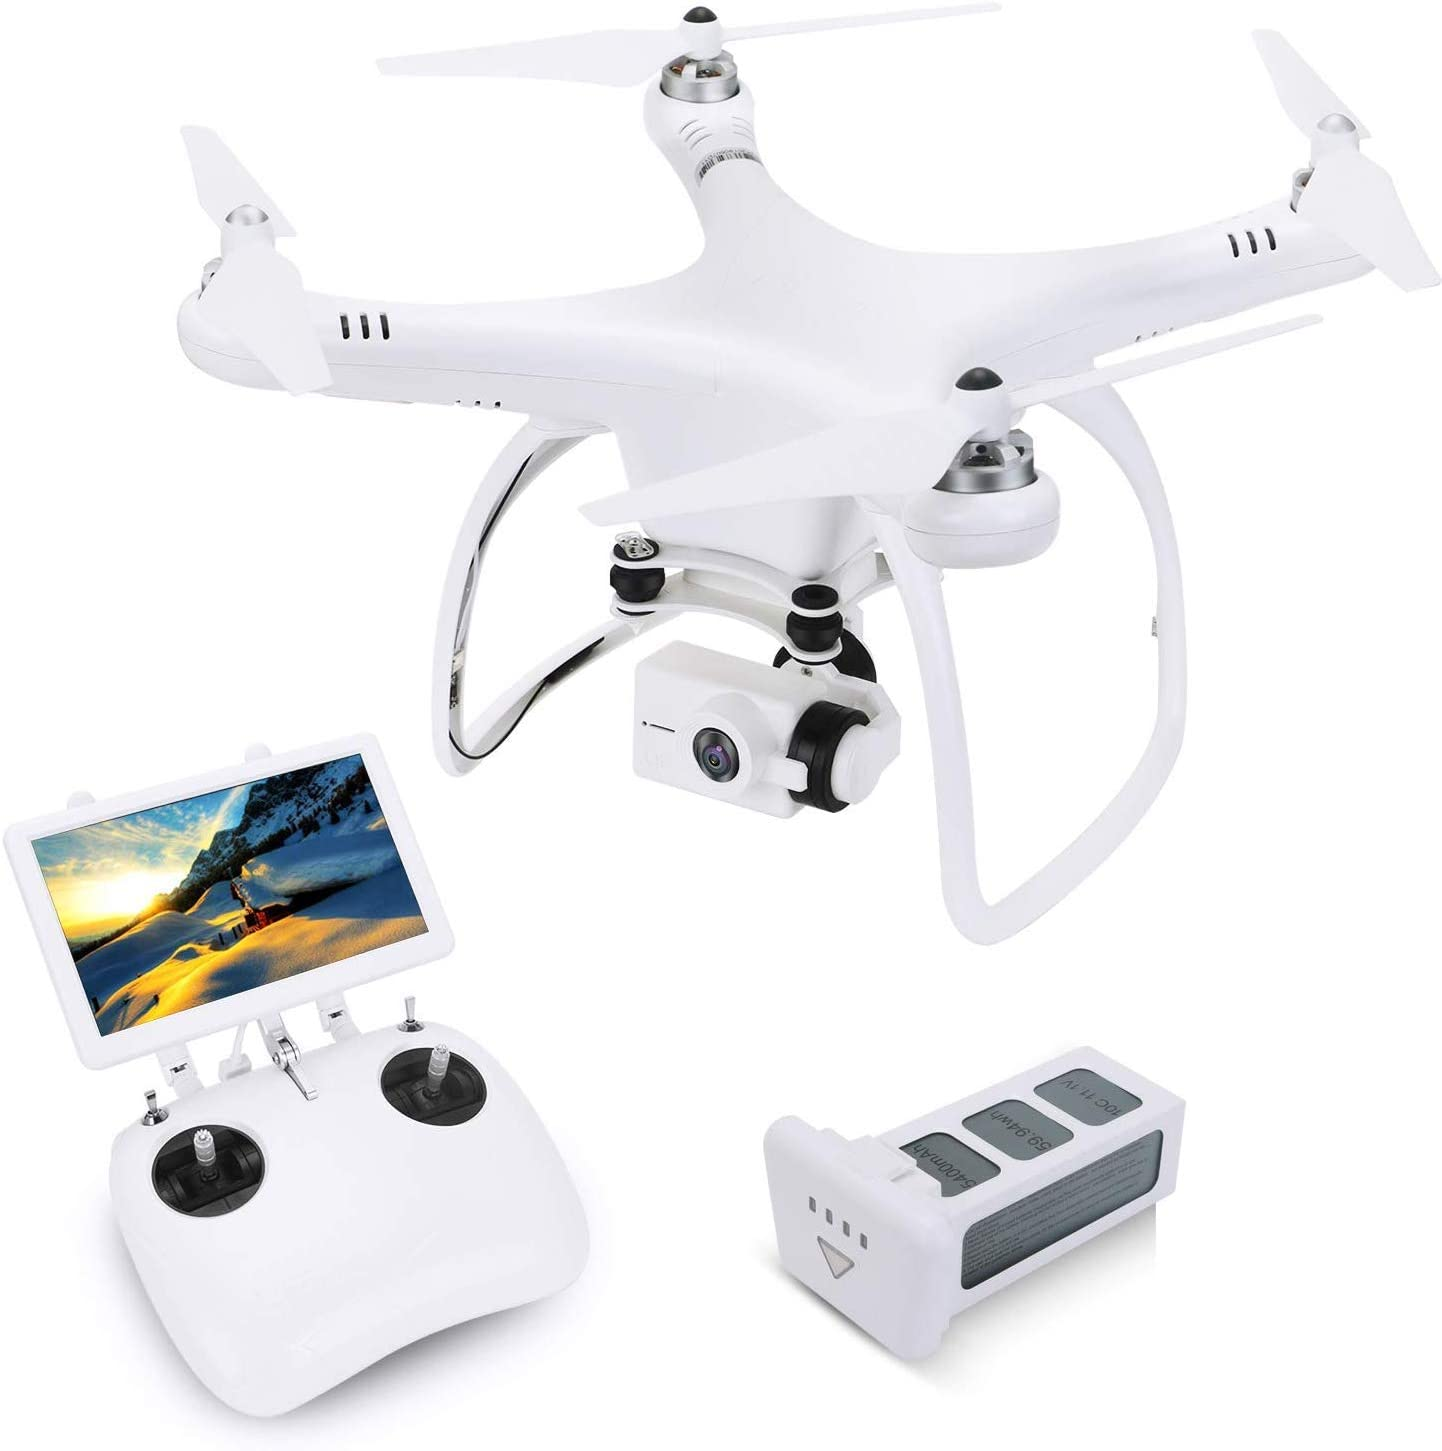 UPAIR One Drone 2.7K with 7 inch Screen